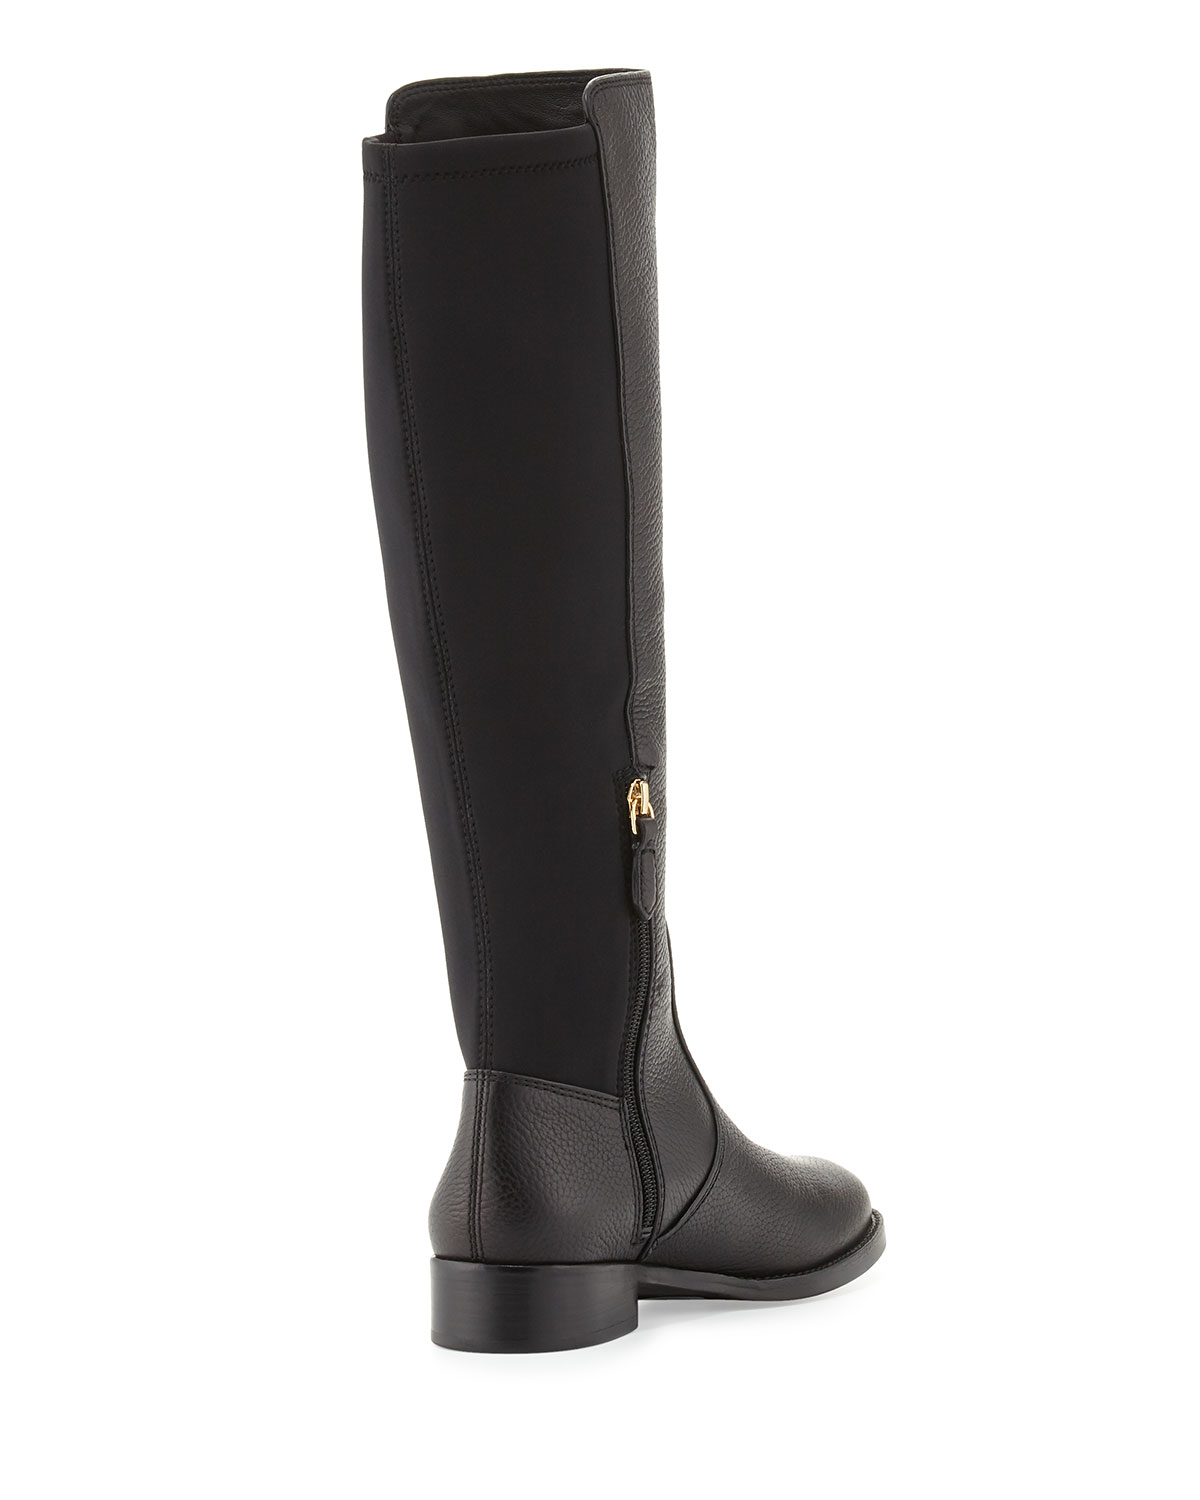 8d17416b1ca7 ... sweden lyst tory burch selden pebbled leather riding boots in black  76ff2 8051c